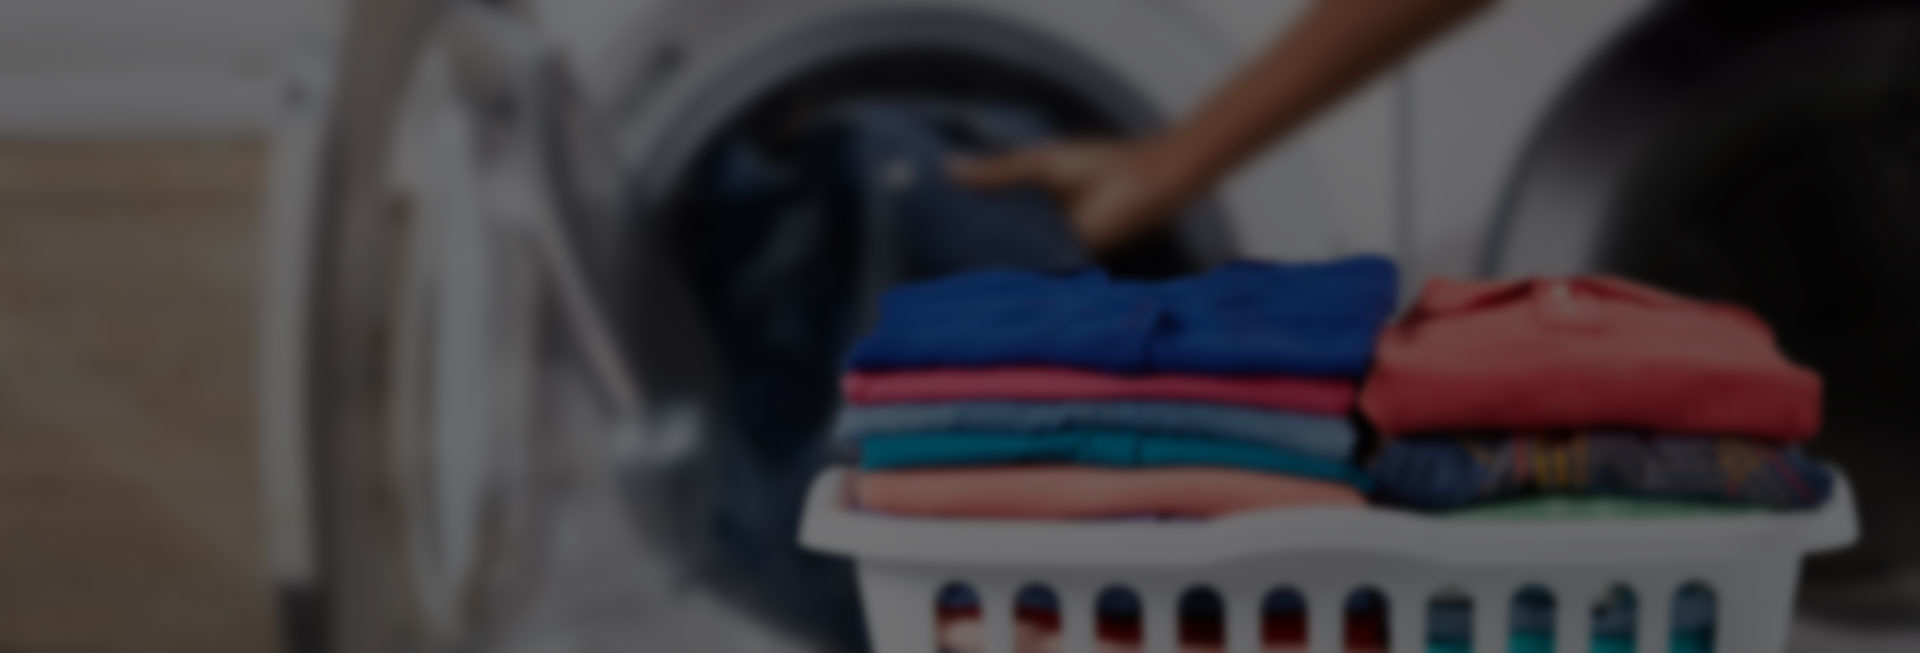 A person loading clothes into a washing machine